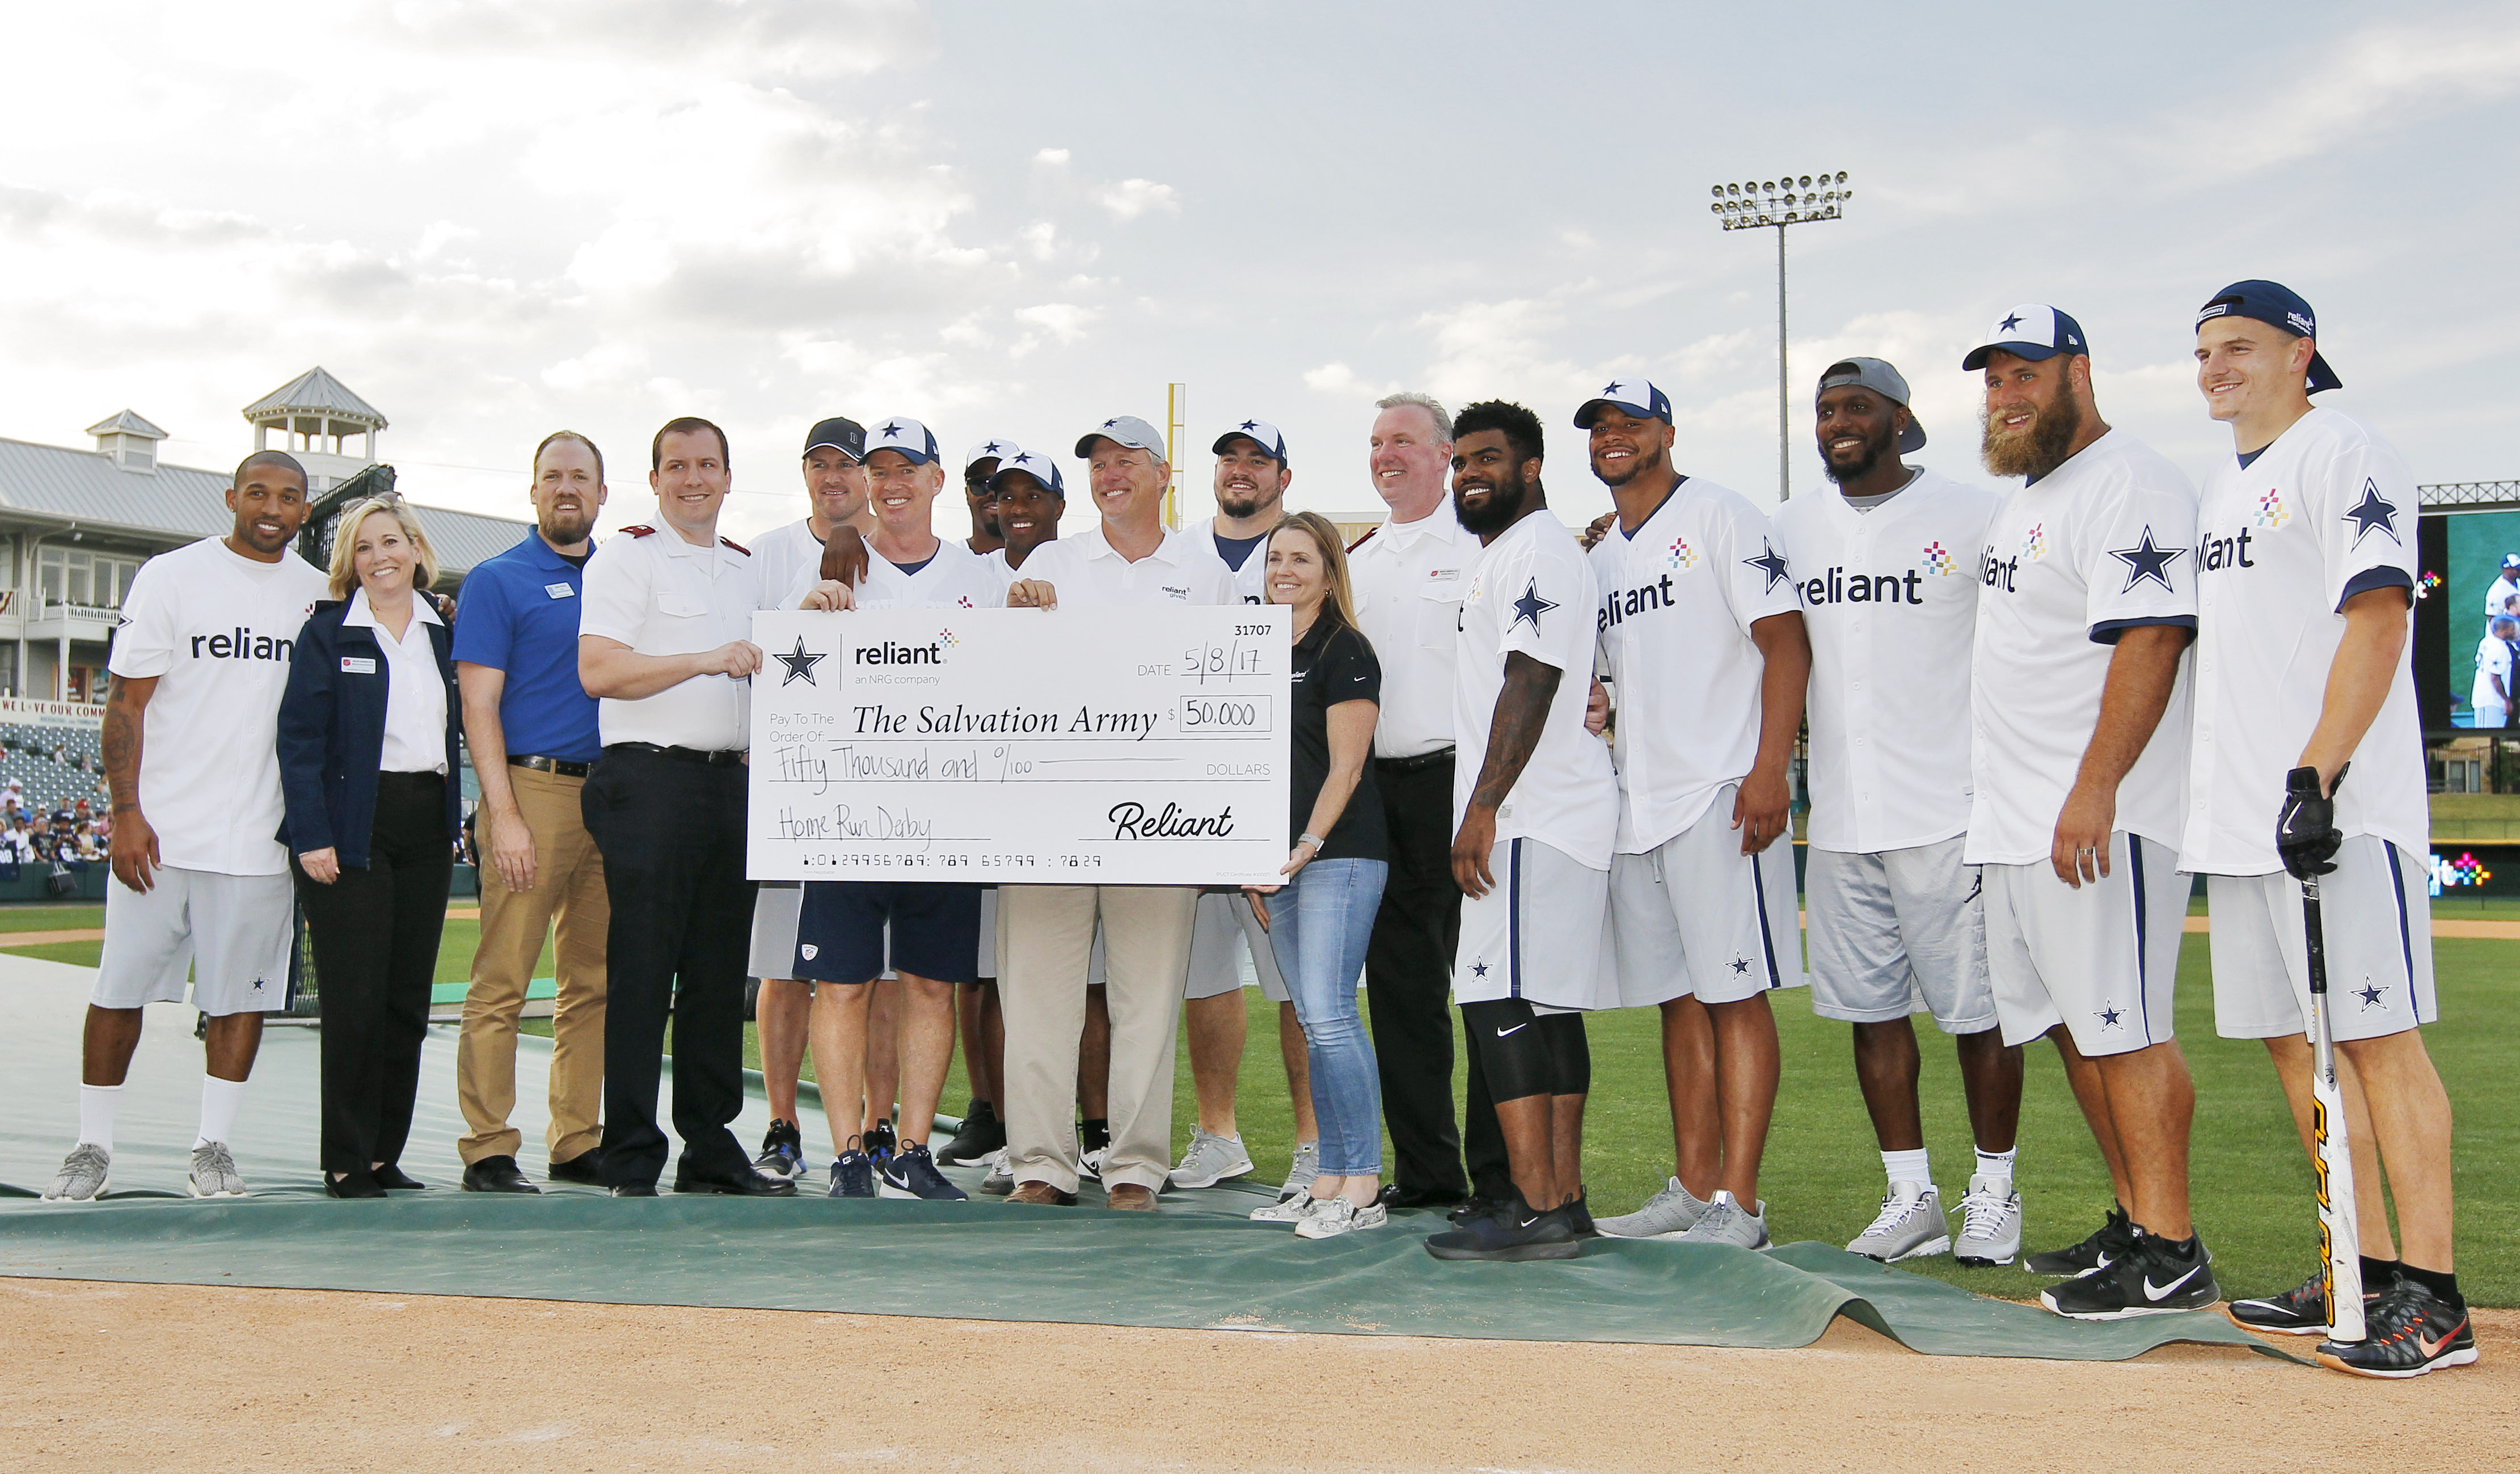 Dallas Cowboys Aim for Fences at Reliant Home Run Derby